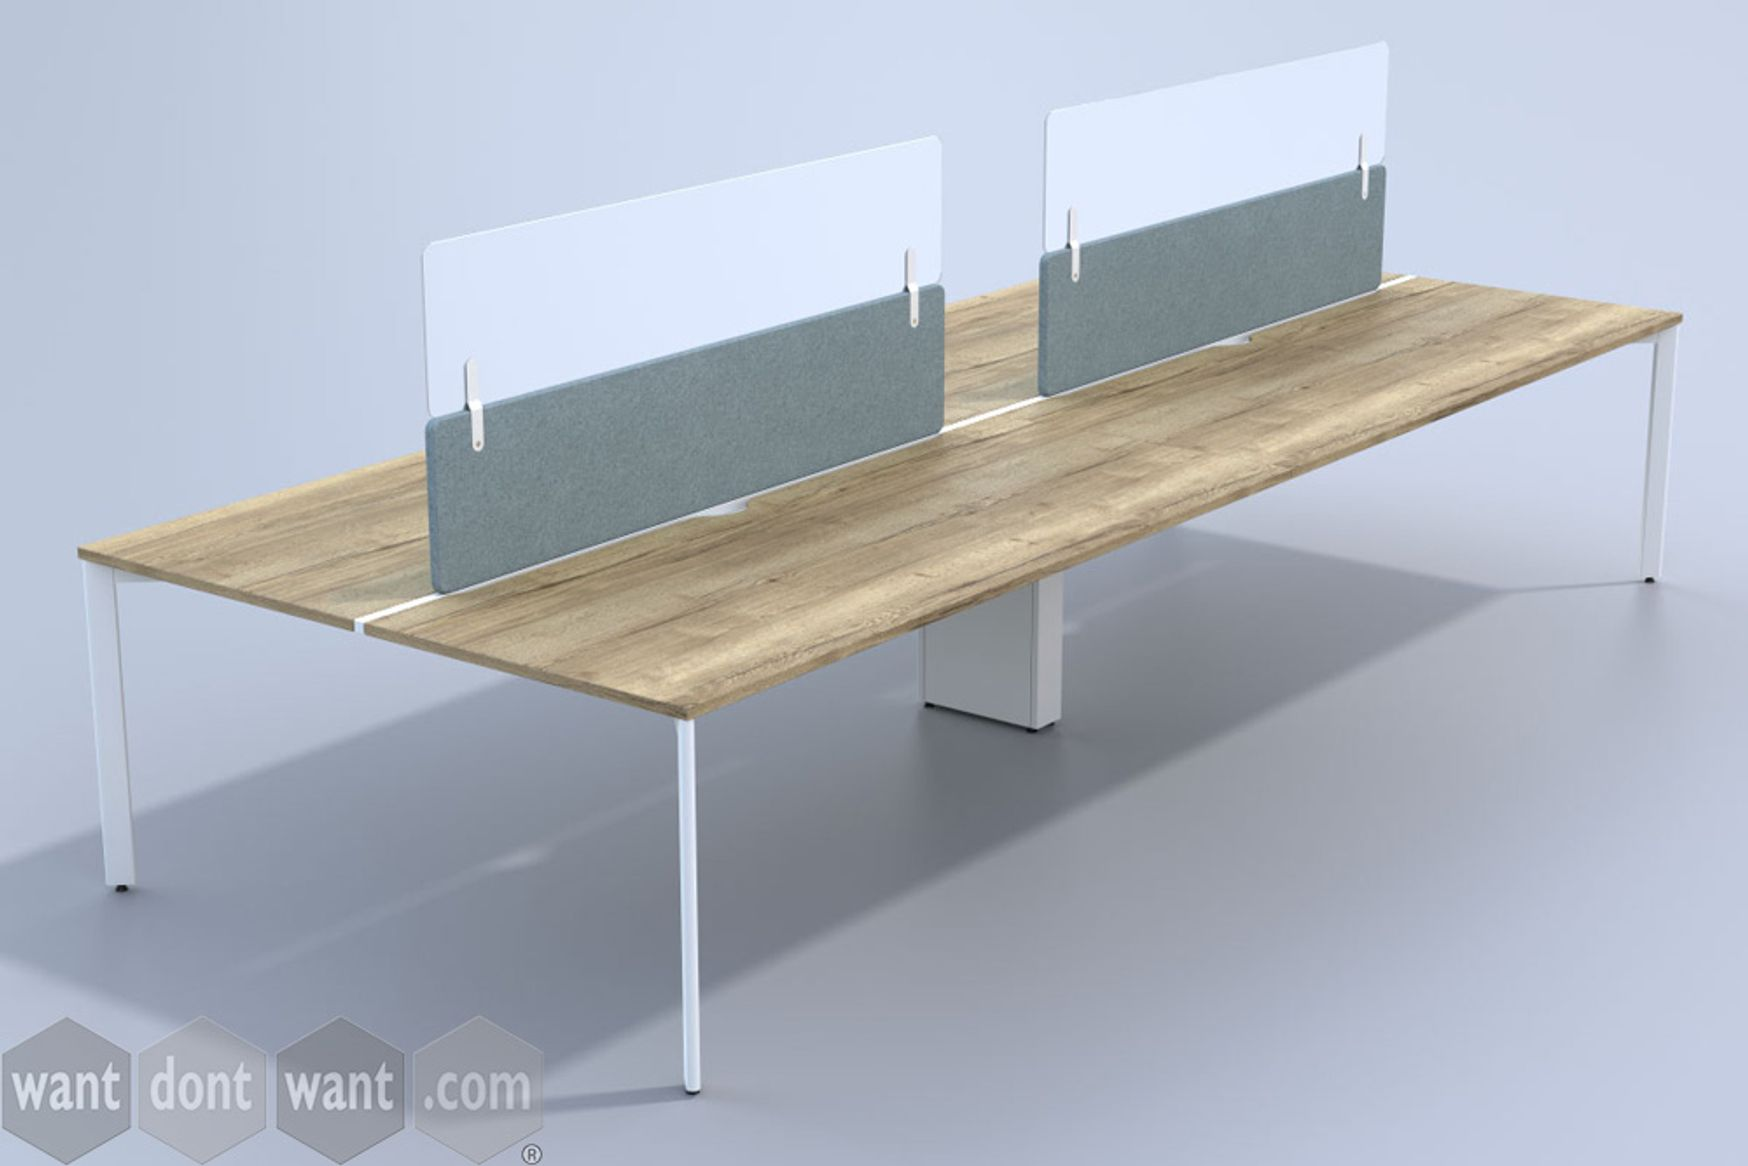 Universal glazed extension screens to be clamped on to your existing desk dividing screens.